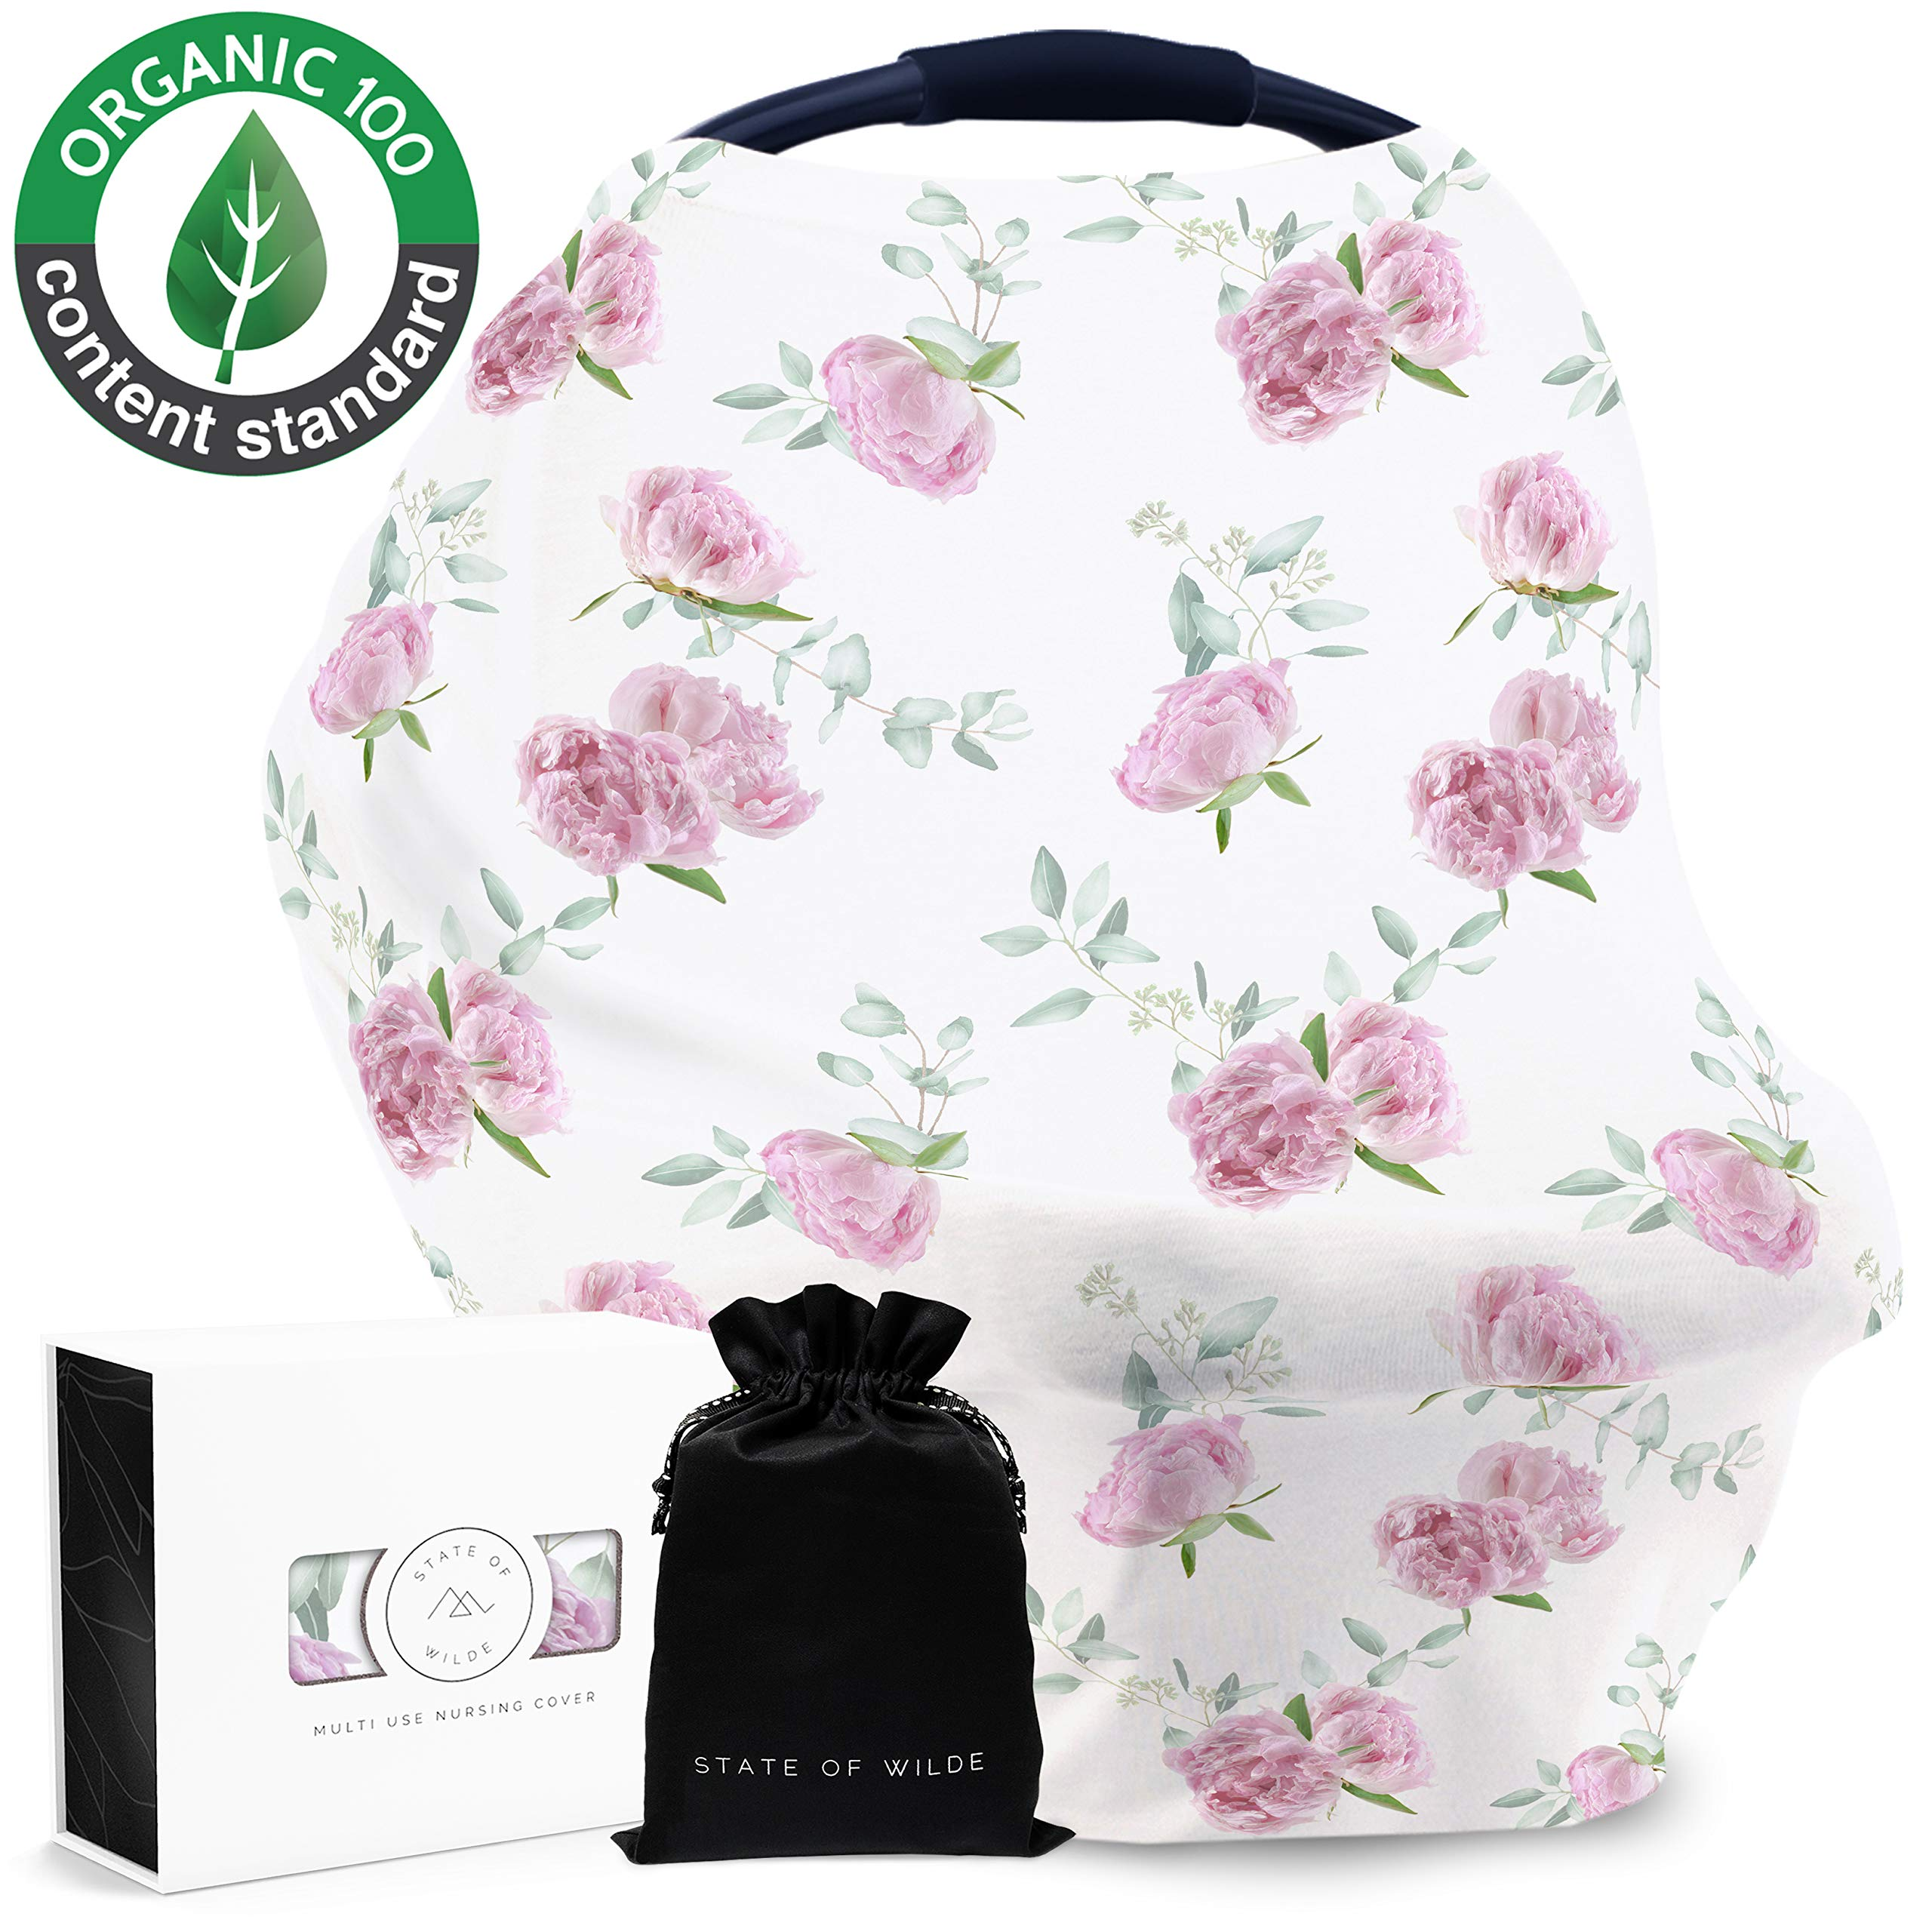 Organic Cotton Nursing Cover for Breastfeeding, Peony Floral, Baby Shower Gift, Multi Use Stretchy Canopy Cover Ups for Babies Car Seat Shopping Cart High Chair Stroller